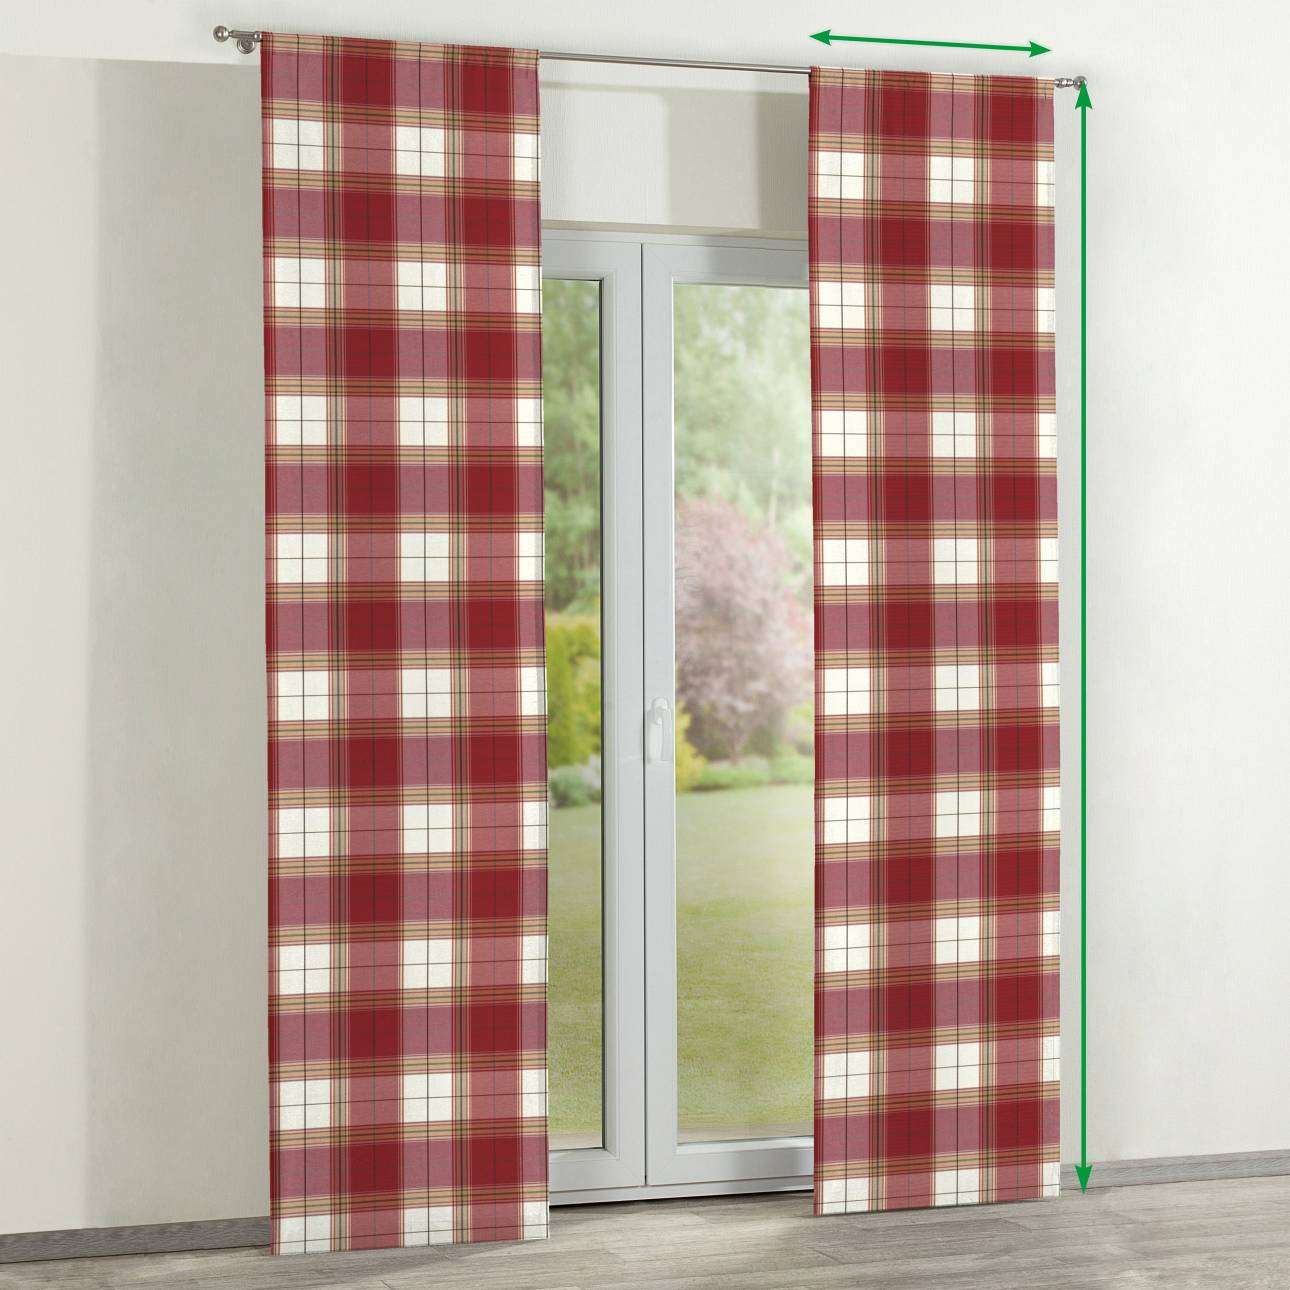 Slot panel curtains – Set of 2 in collection Bristol, fabric: 125-15